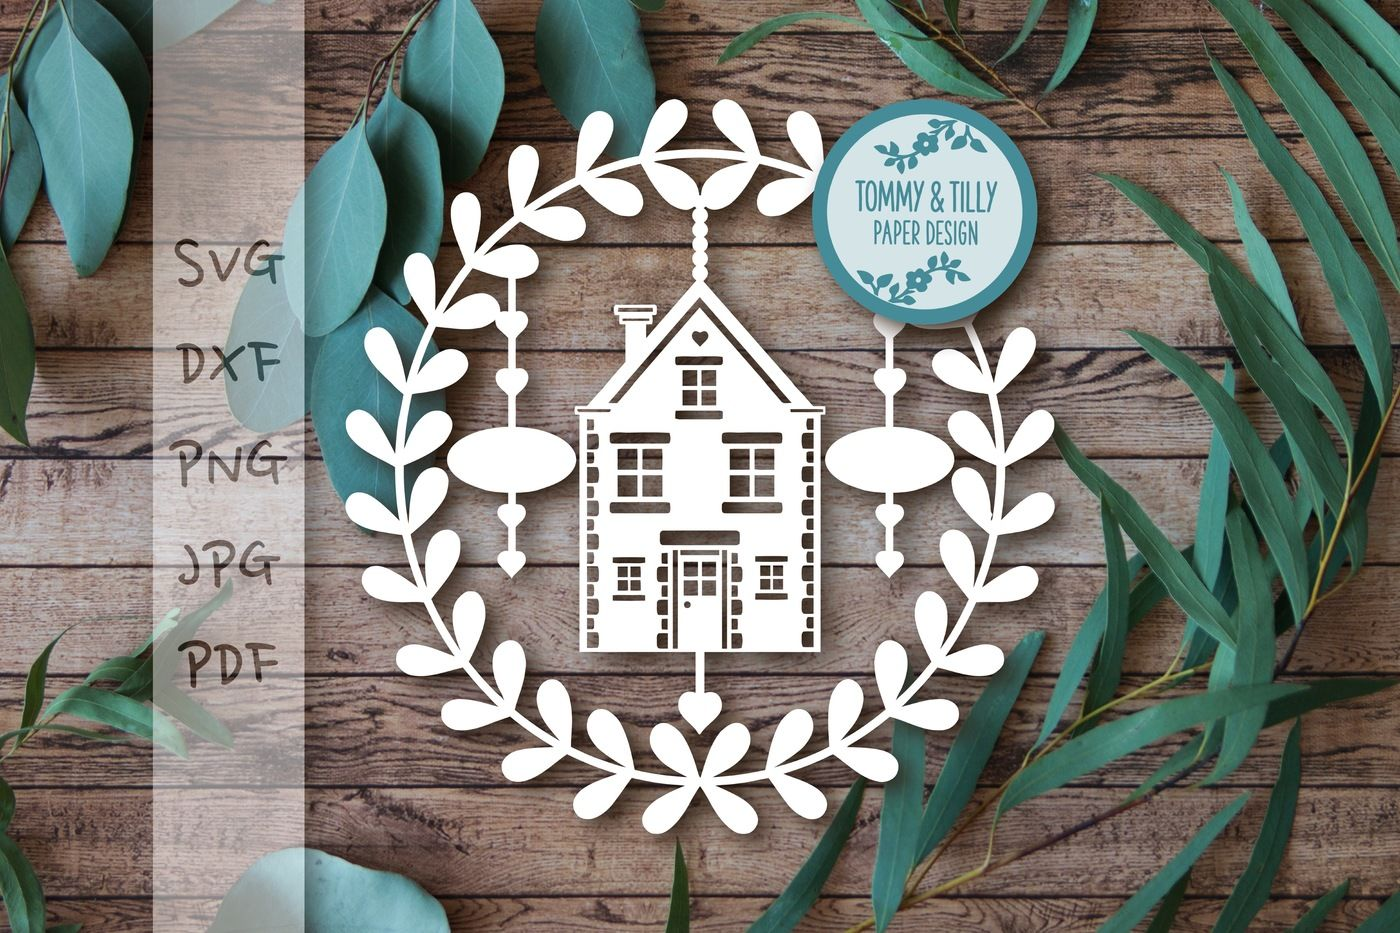 New Home Garland Svg Dxf Png Pdf Jpg By Tommy And Tilly Design